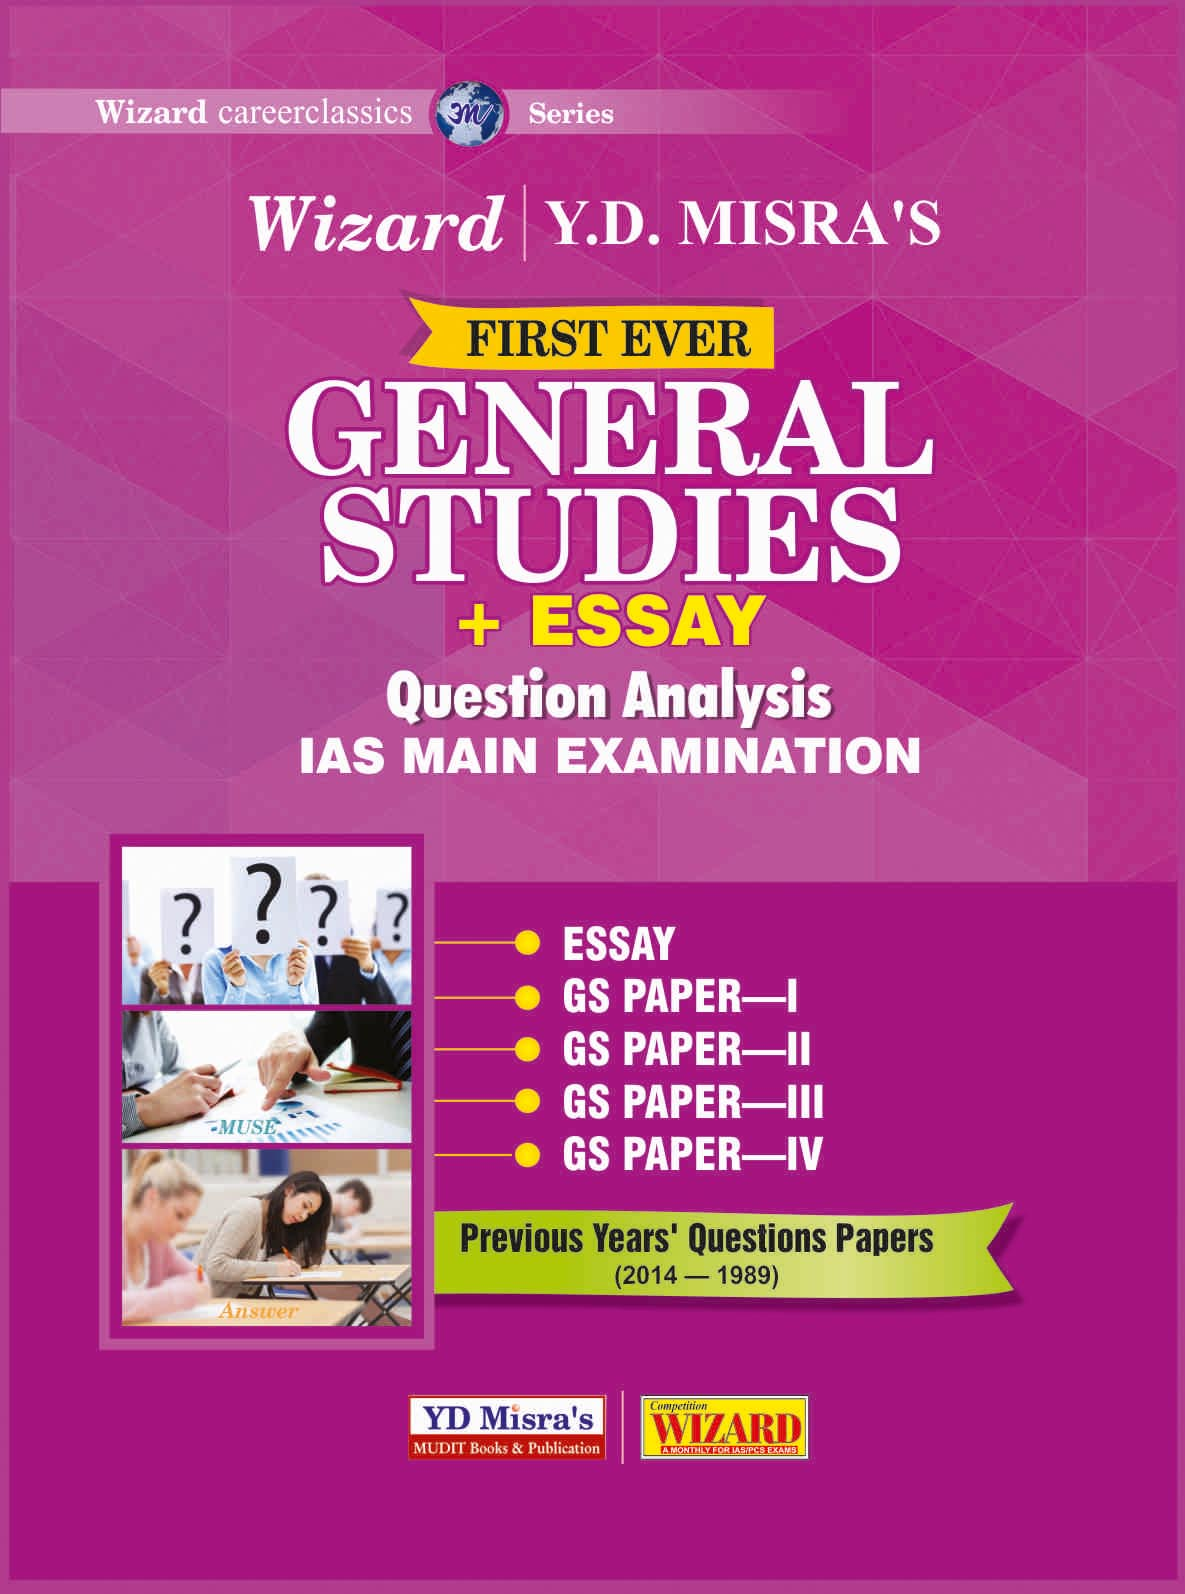 n economy essay words essay on special economic zones  wizard n economy general studies price at flipkart snapdeal wizard general studies essay question analysis for